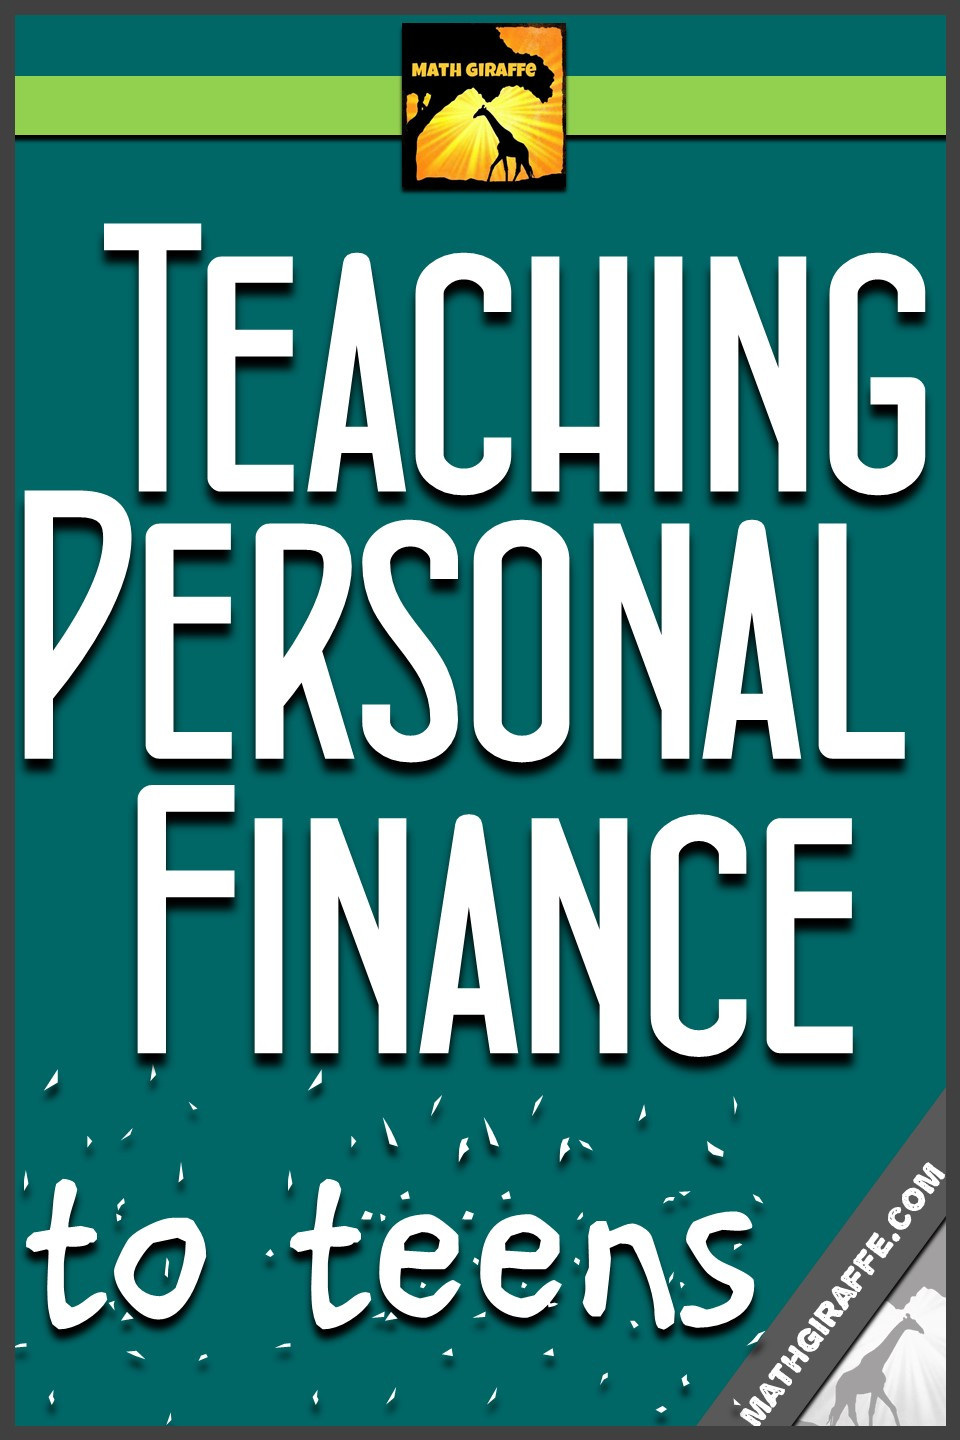 Financial Math Worksheets High School Teaching Personal Finance to Teens